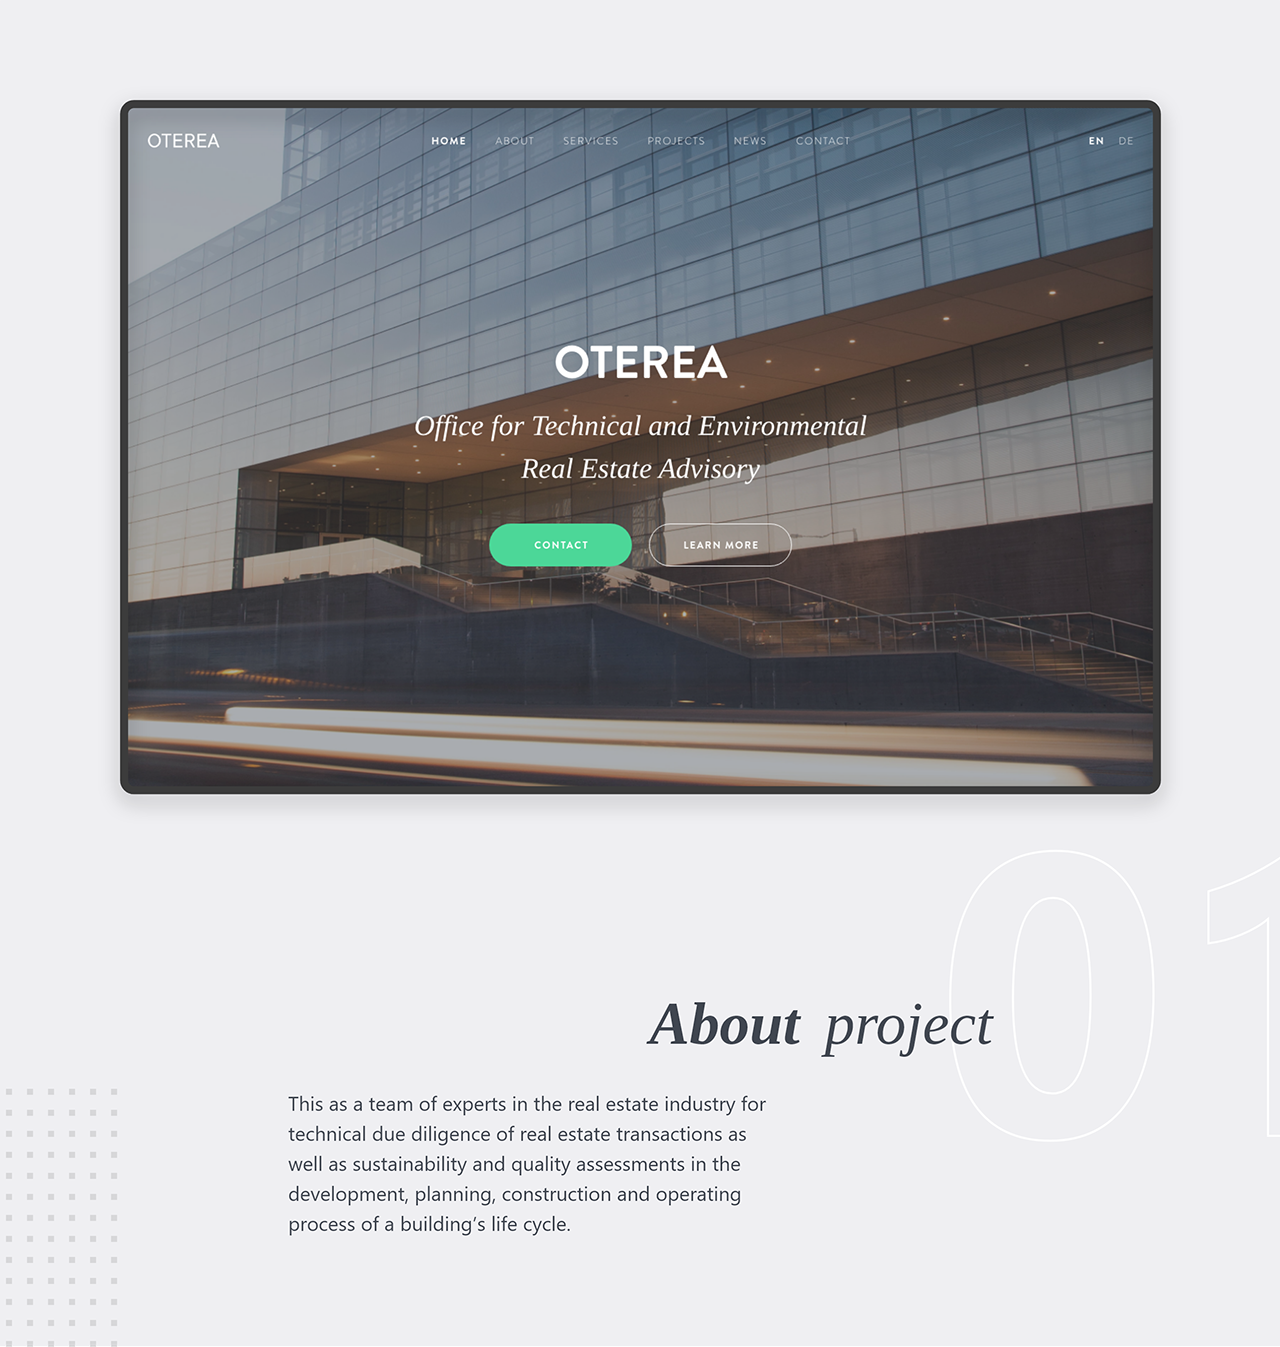 oterea website homepage